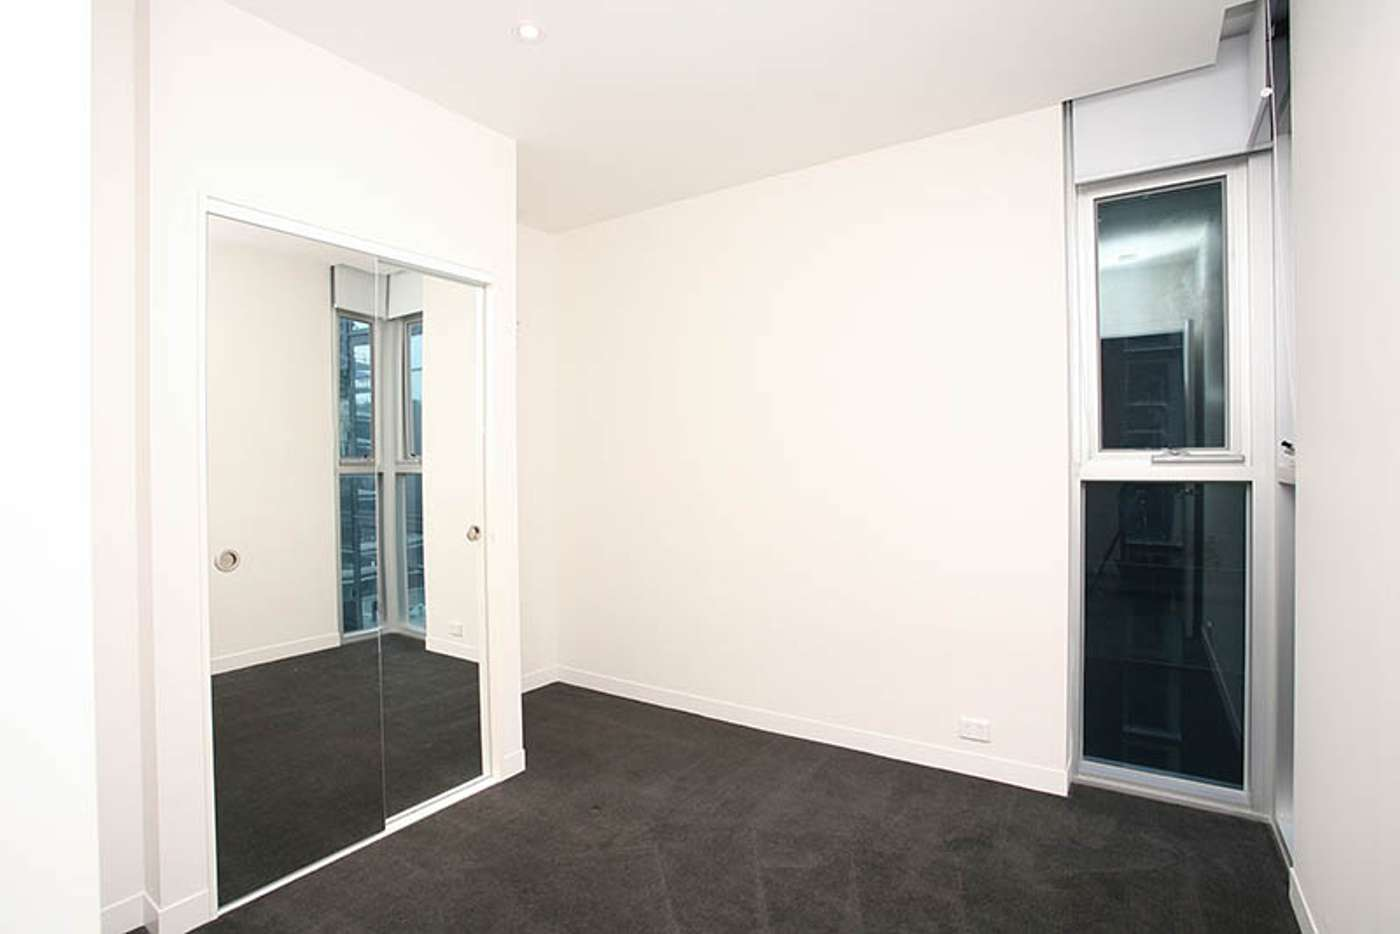 Sixth view of Homely apartment listing, 1011/7 Yarra Street, South Yarra VIC 3141